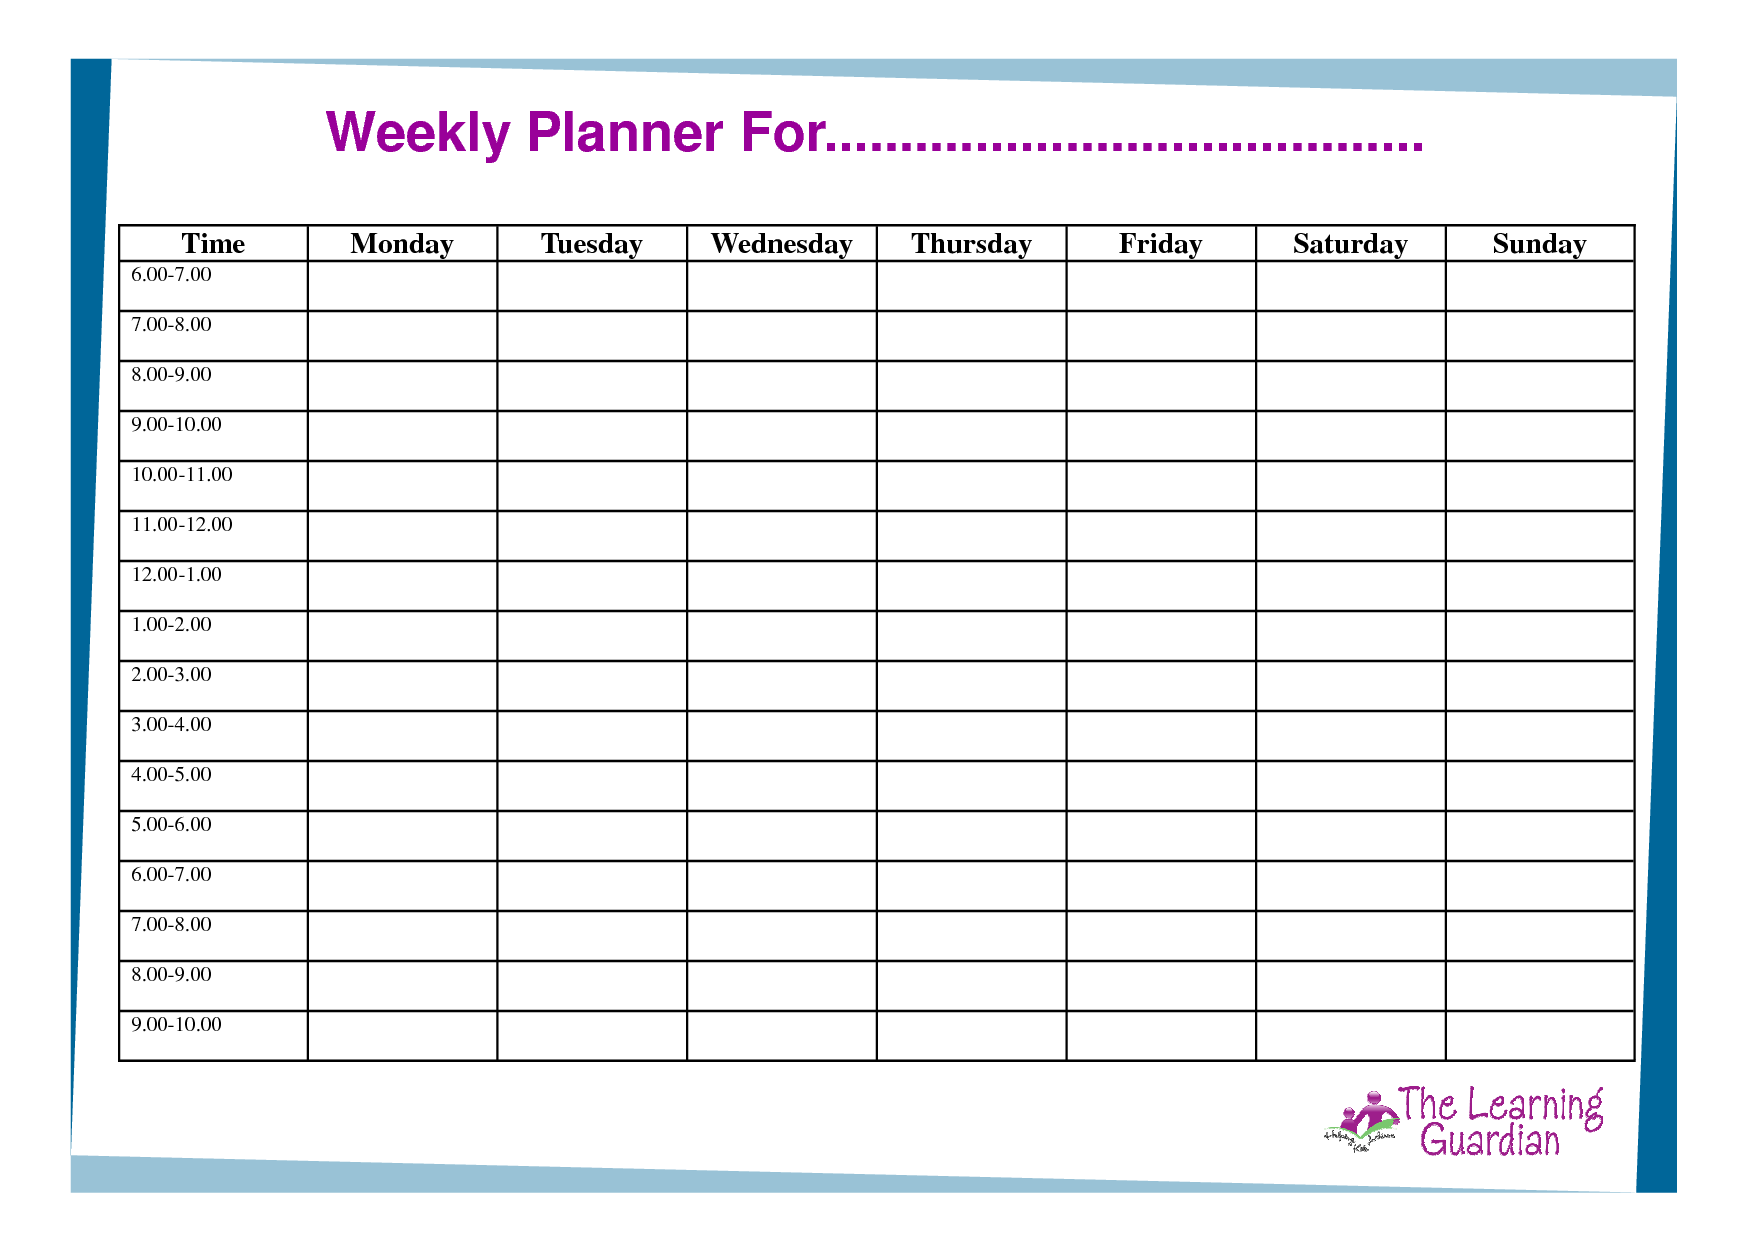 Time Planner Template. Free Weekly Schedule Templates for Word ...